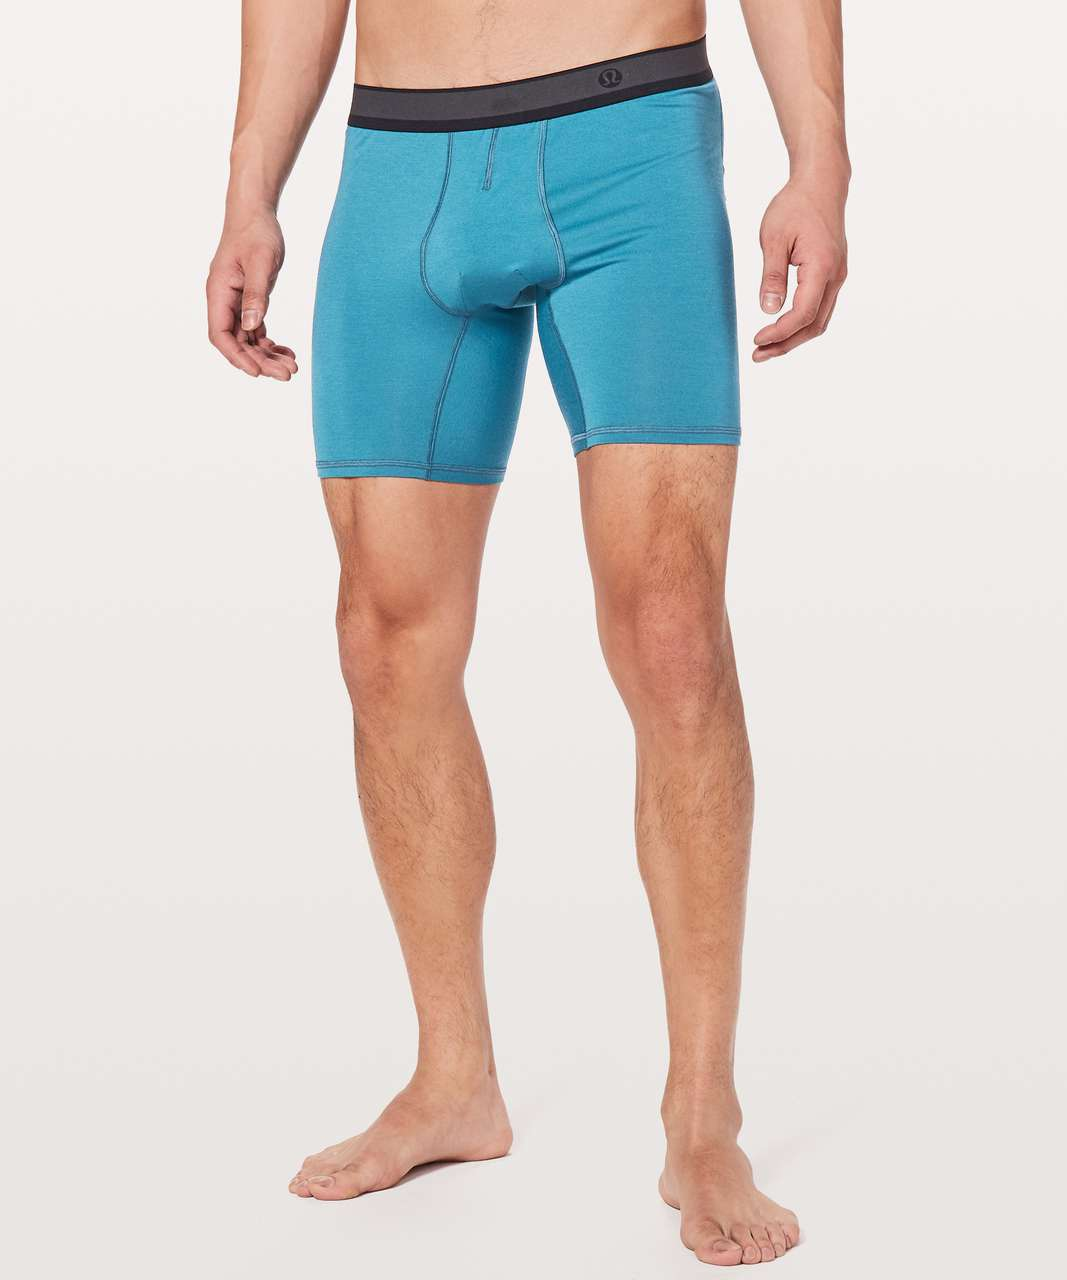 "Lululemon No Boxer Boxer (The Long One) *7.5"" - Pewter Blue"